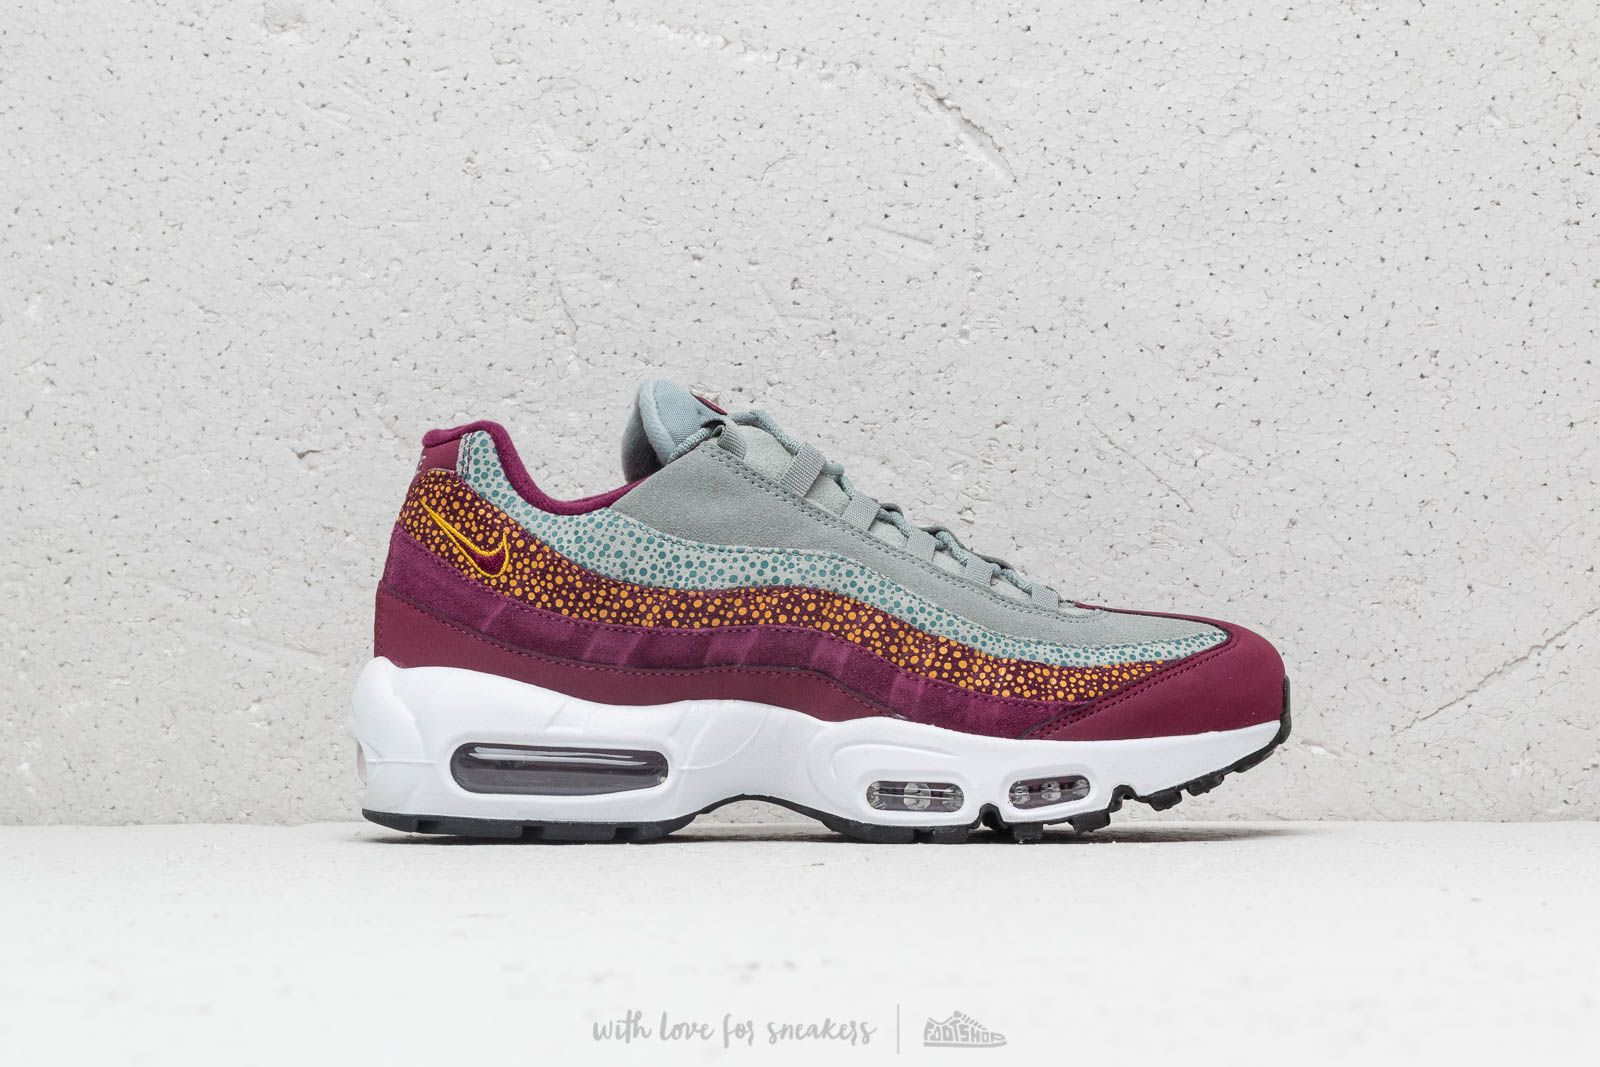 quality design 85694 21d8e Nike Wmns Air Max 95 Premium Bordeaux Bordeaux-Yellow Ochre at a great  price